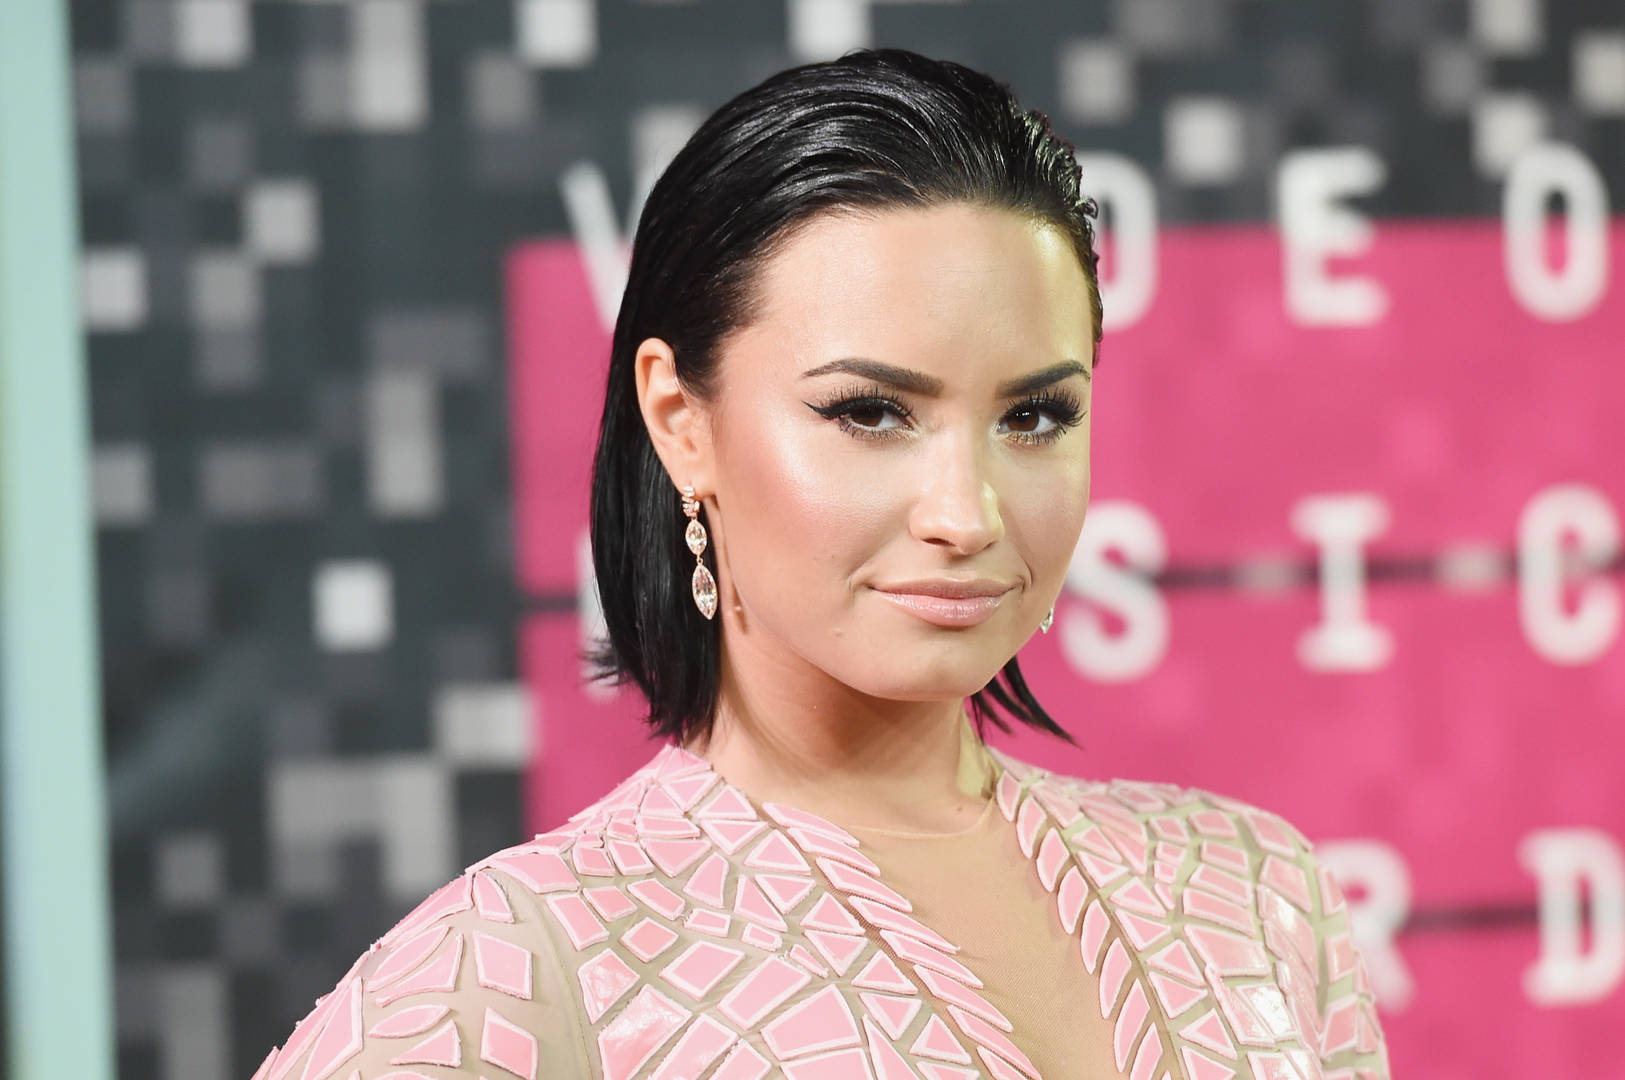 Demi Lovato Has a New Boyfriend & They're Instagram Official!